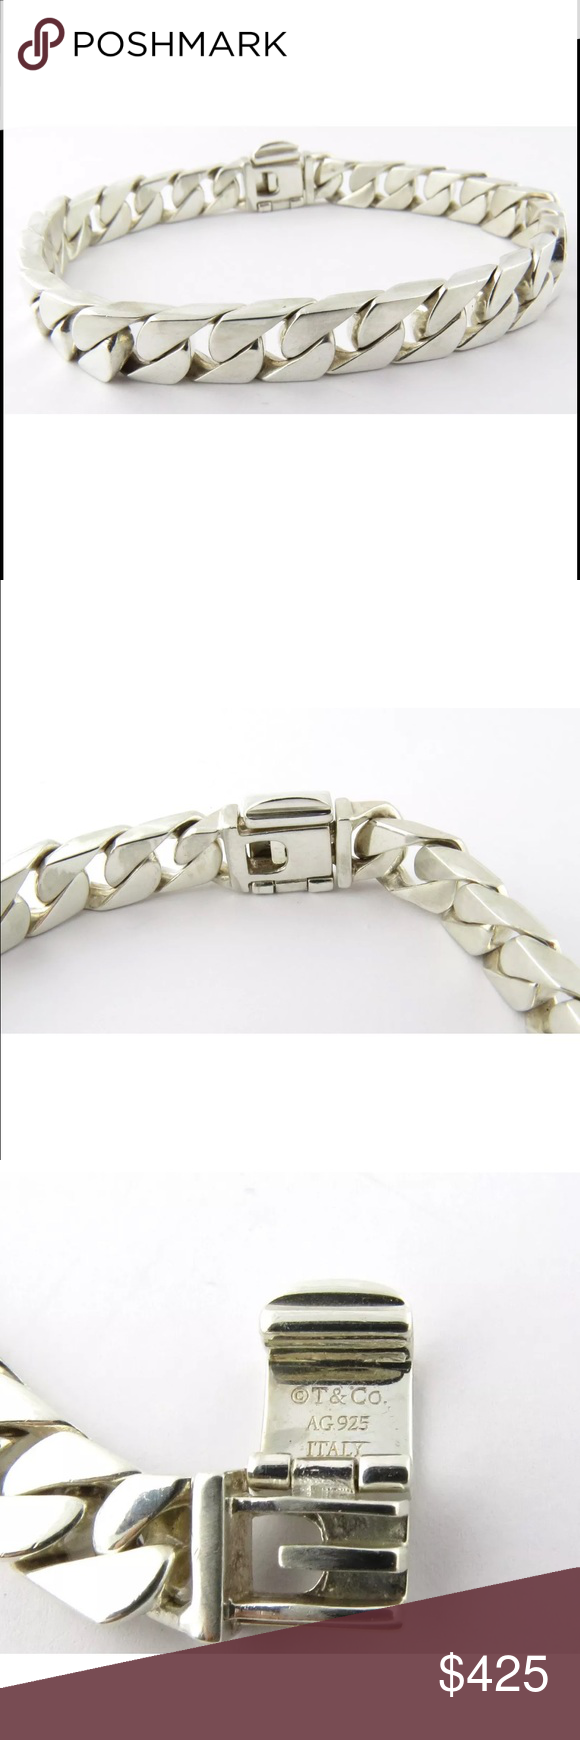 Tiffany Co Heavy Men S Curb Link Bracelet 8 25